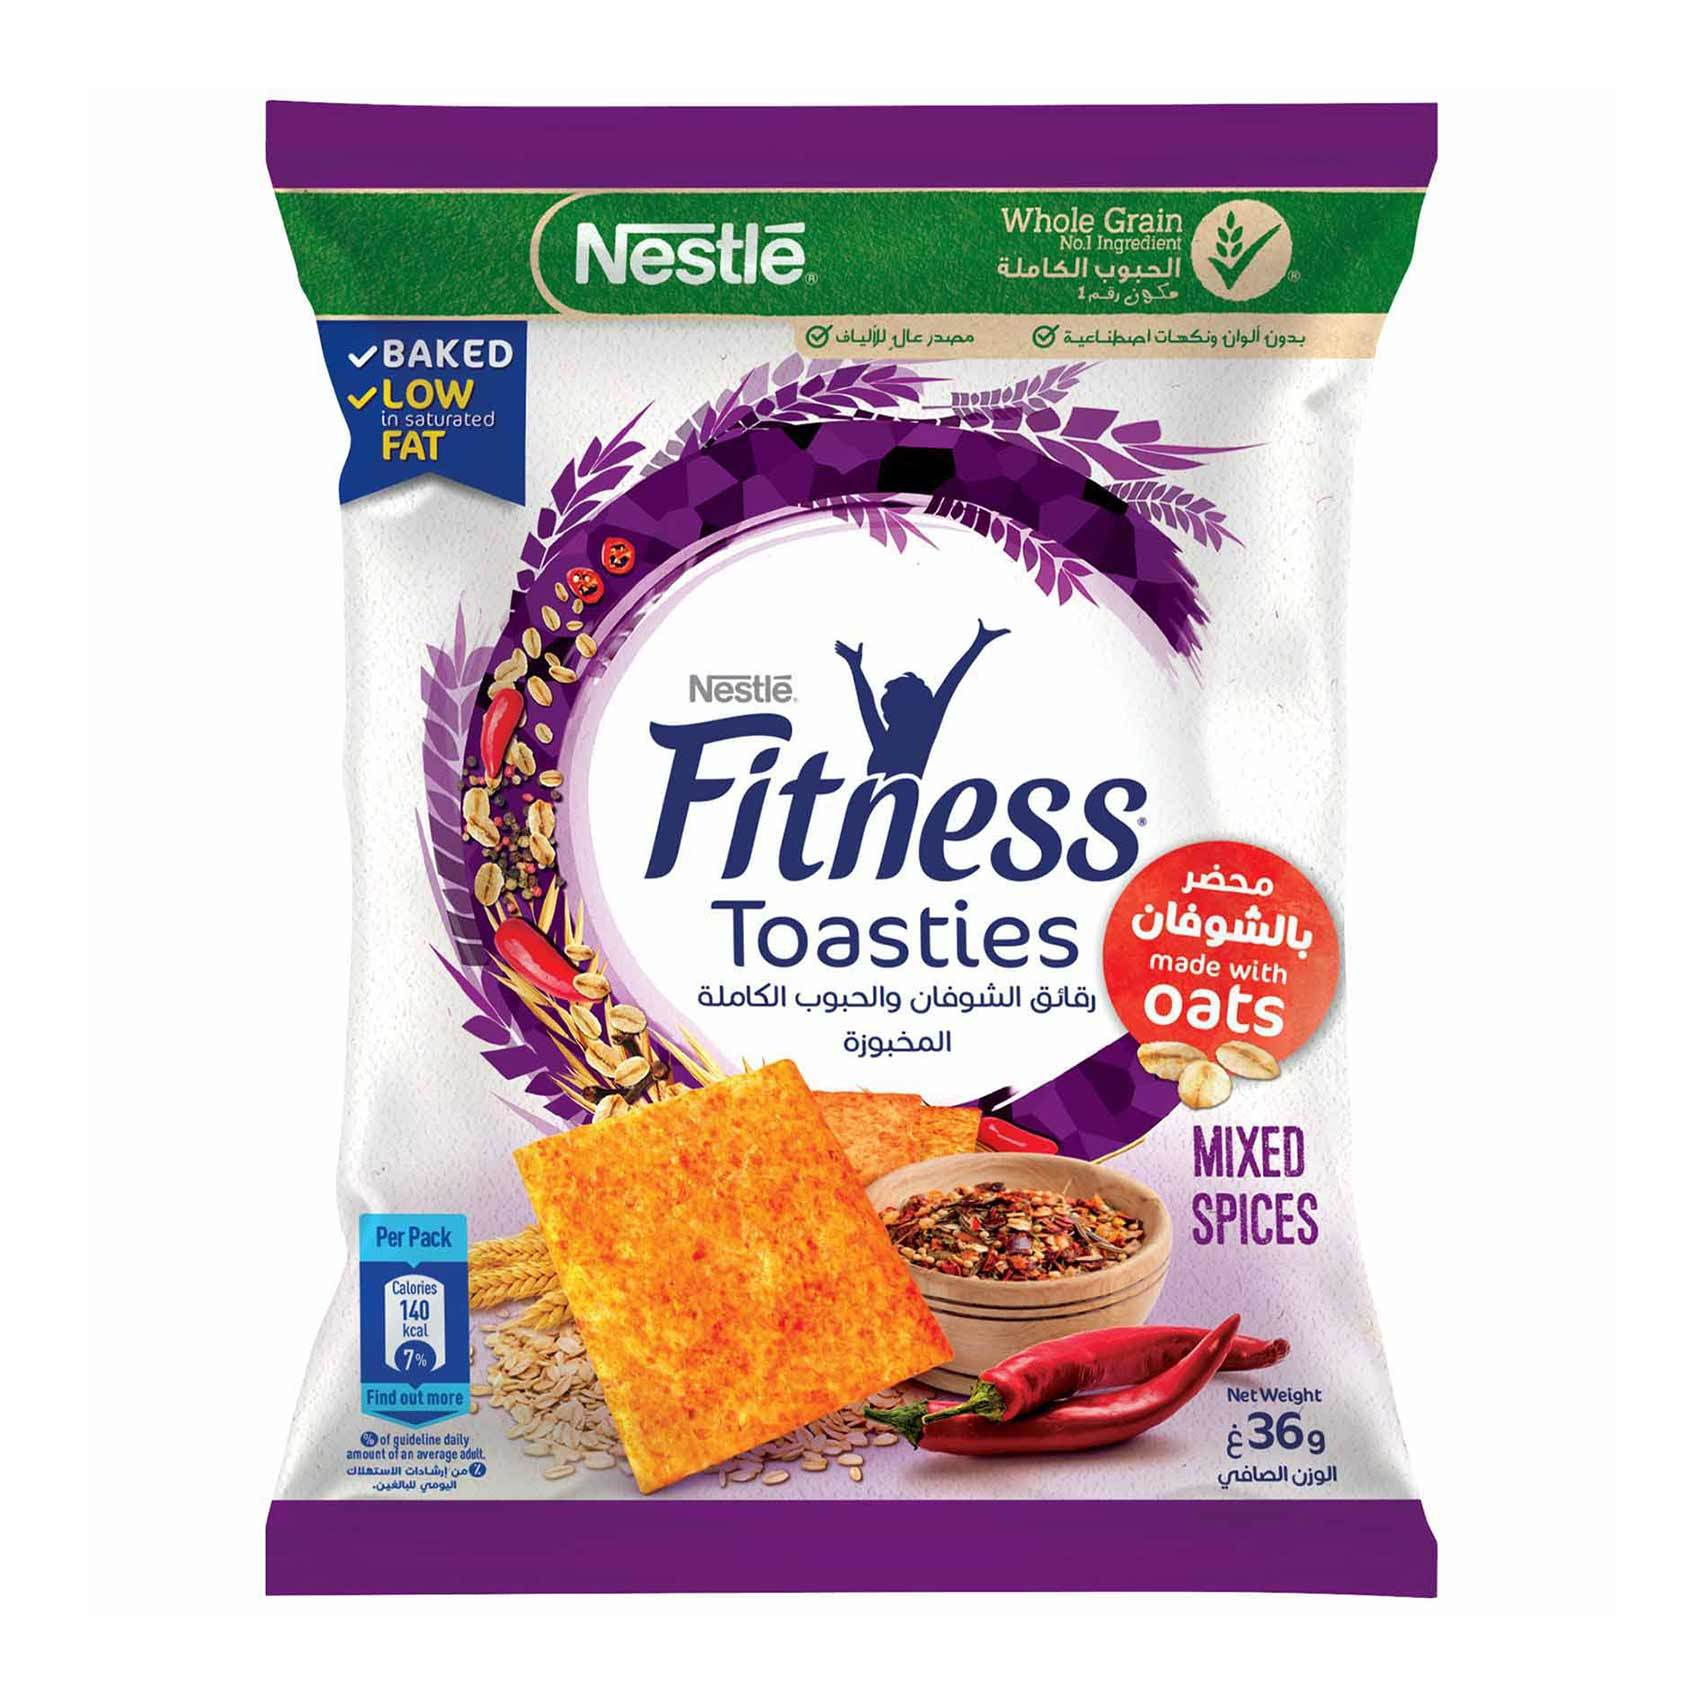 Buy Fitness Toasties Oats Mix Spices 36 G Online Shop Food Cupboard On Carrefour Saudi Arabia